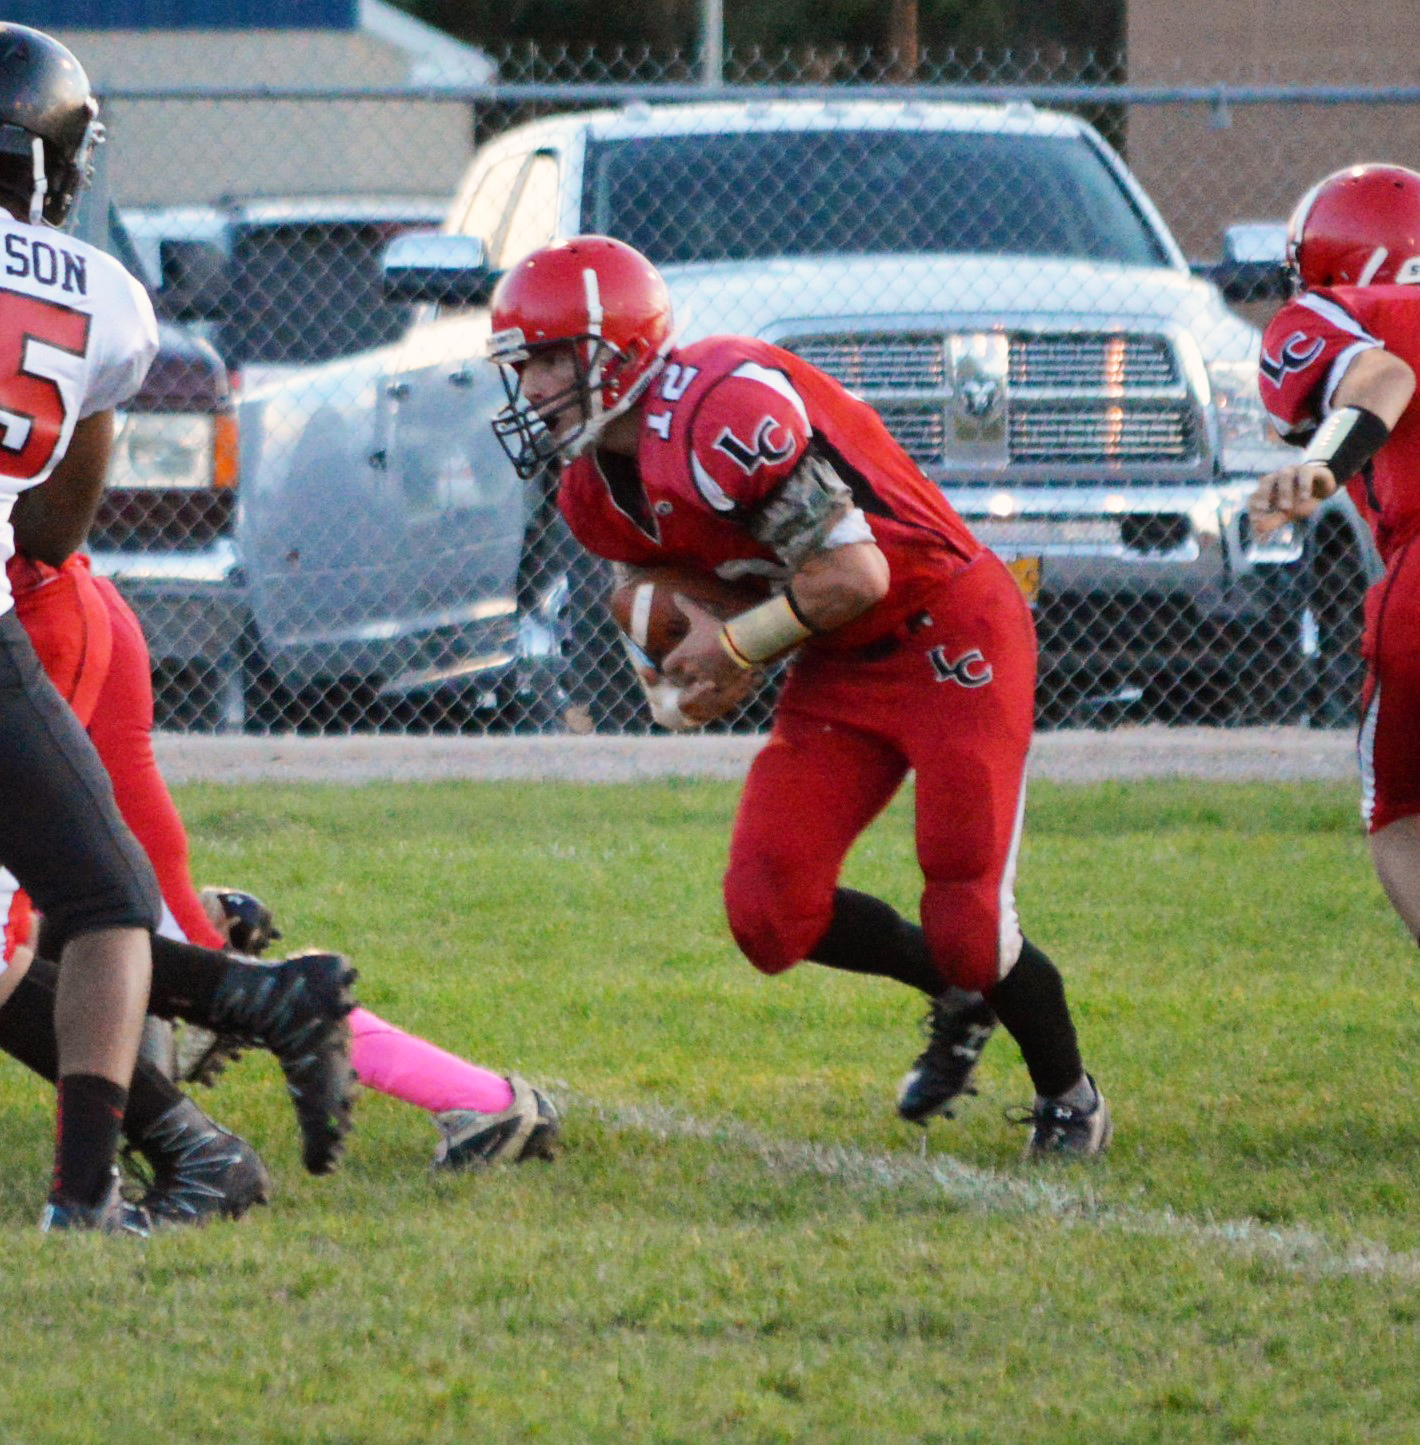 Lincoln Topples Mountain View